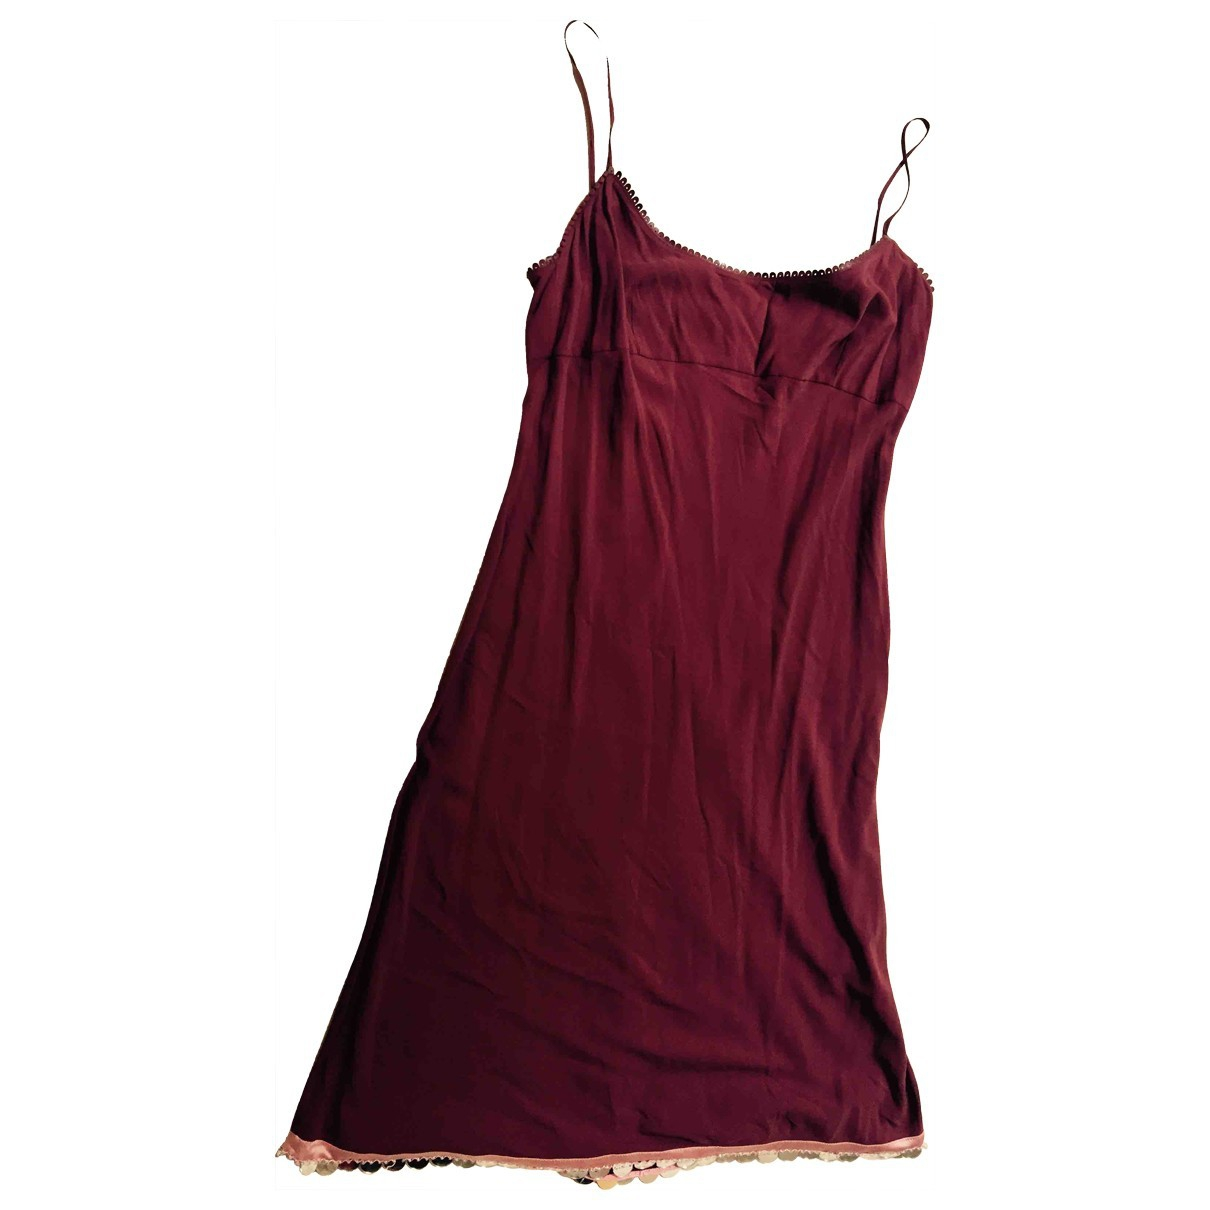 Prada \N Burgundy Silk dress for Women 46